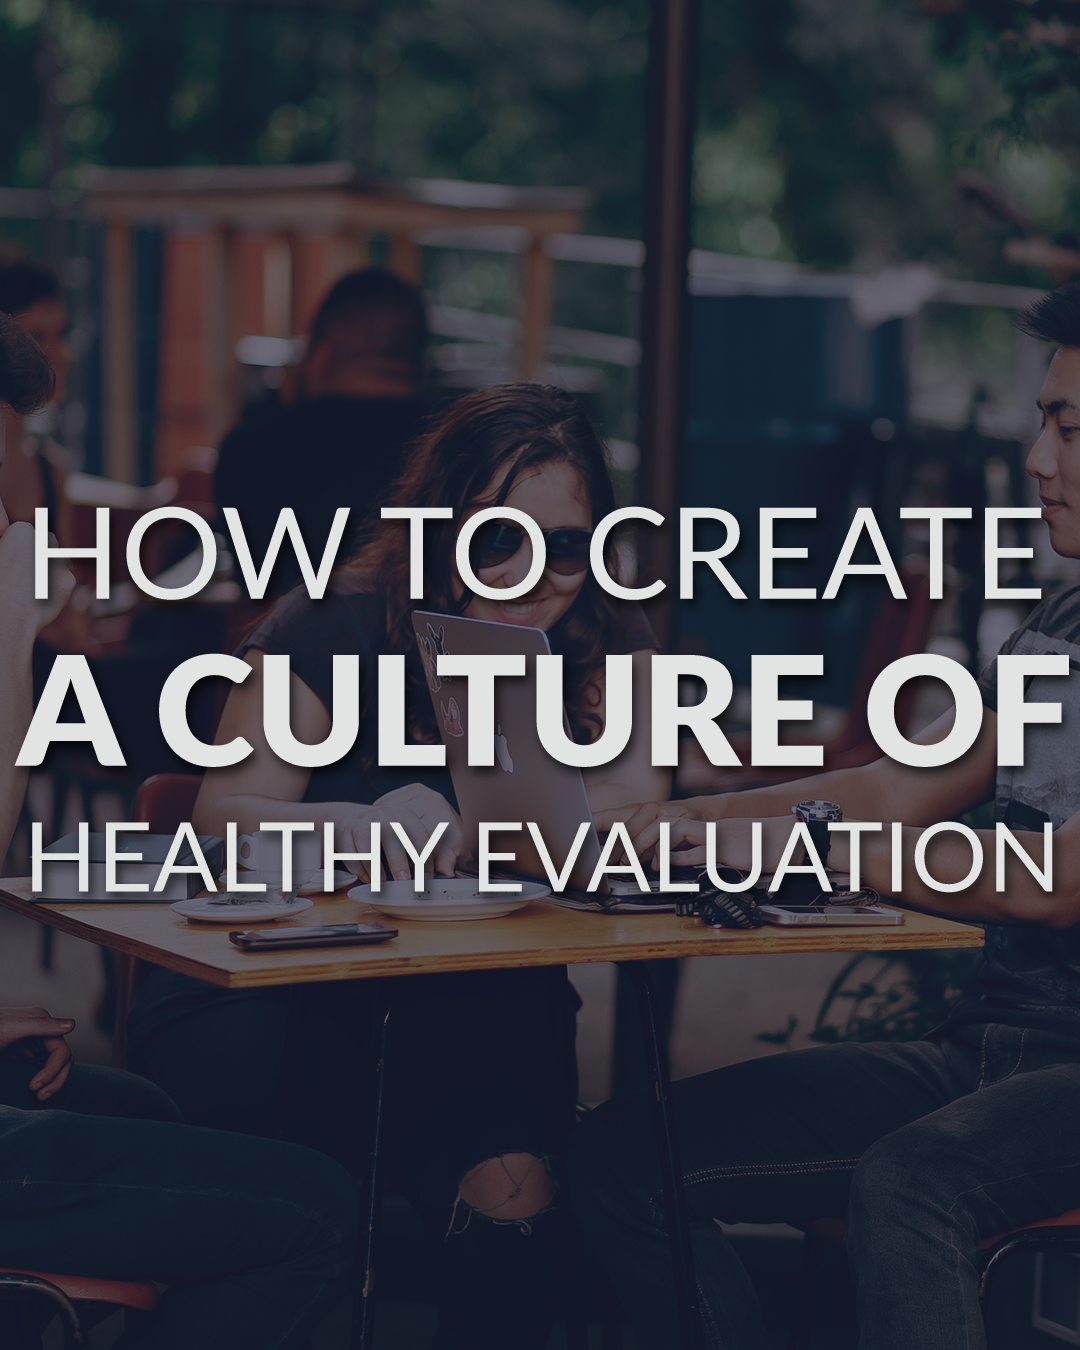 creating a culture of healthy evaluation